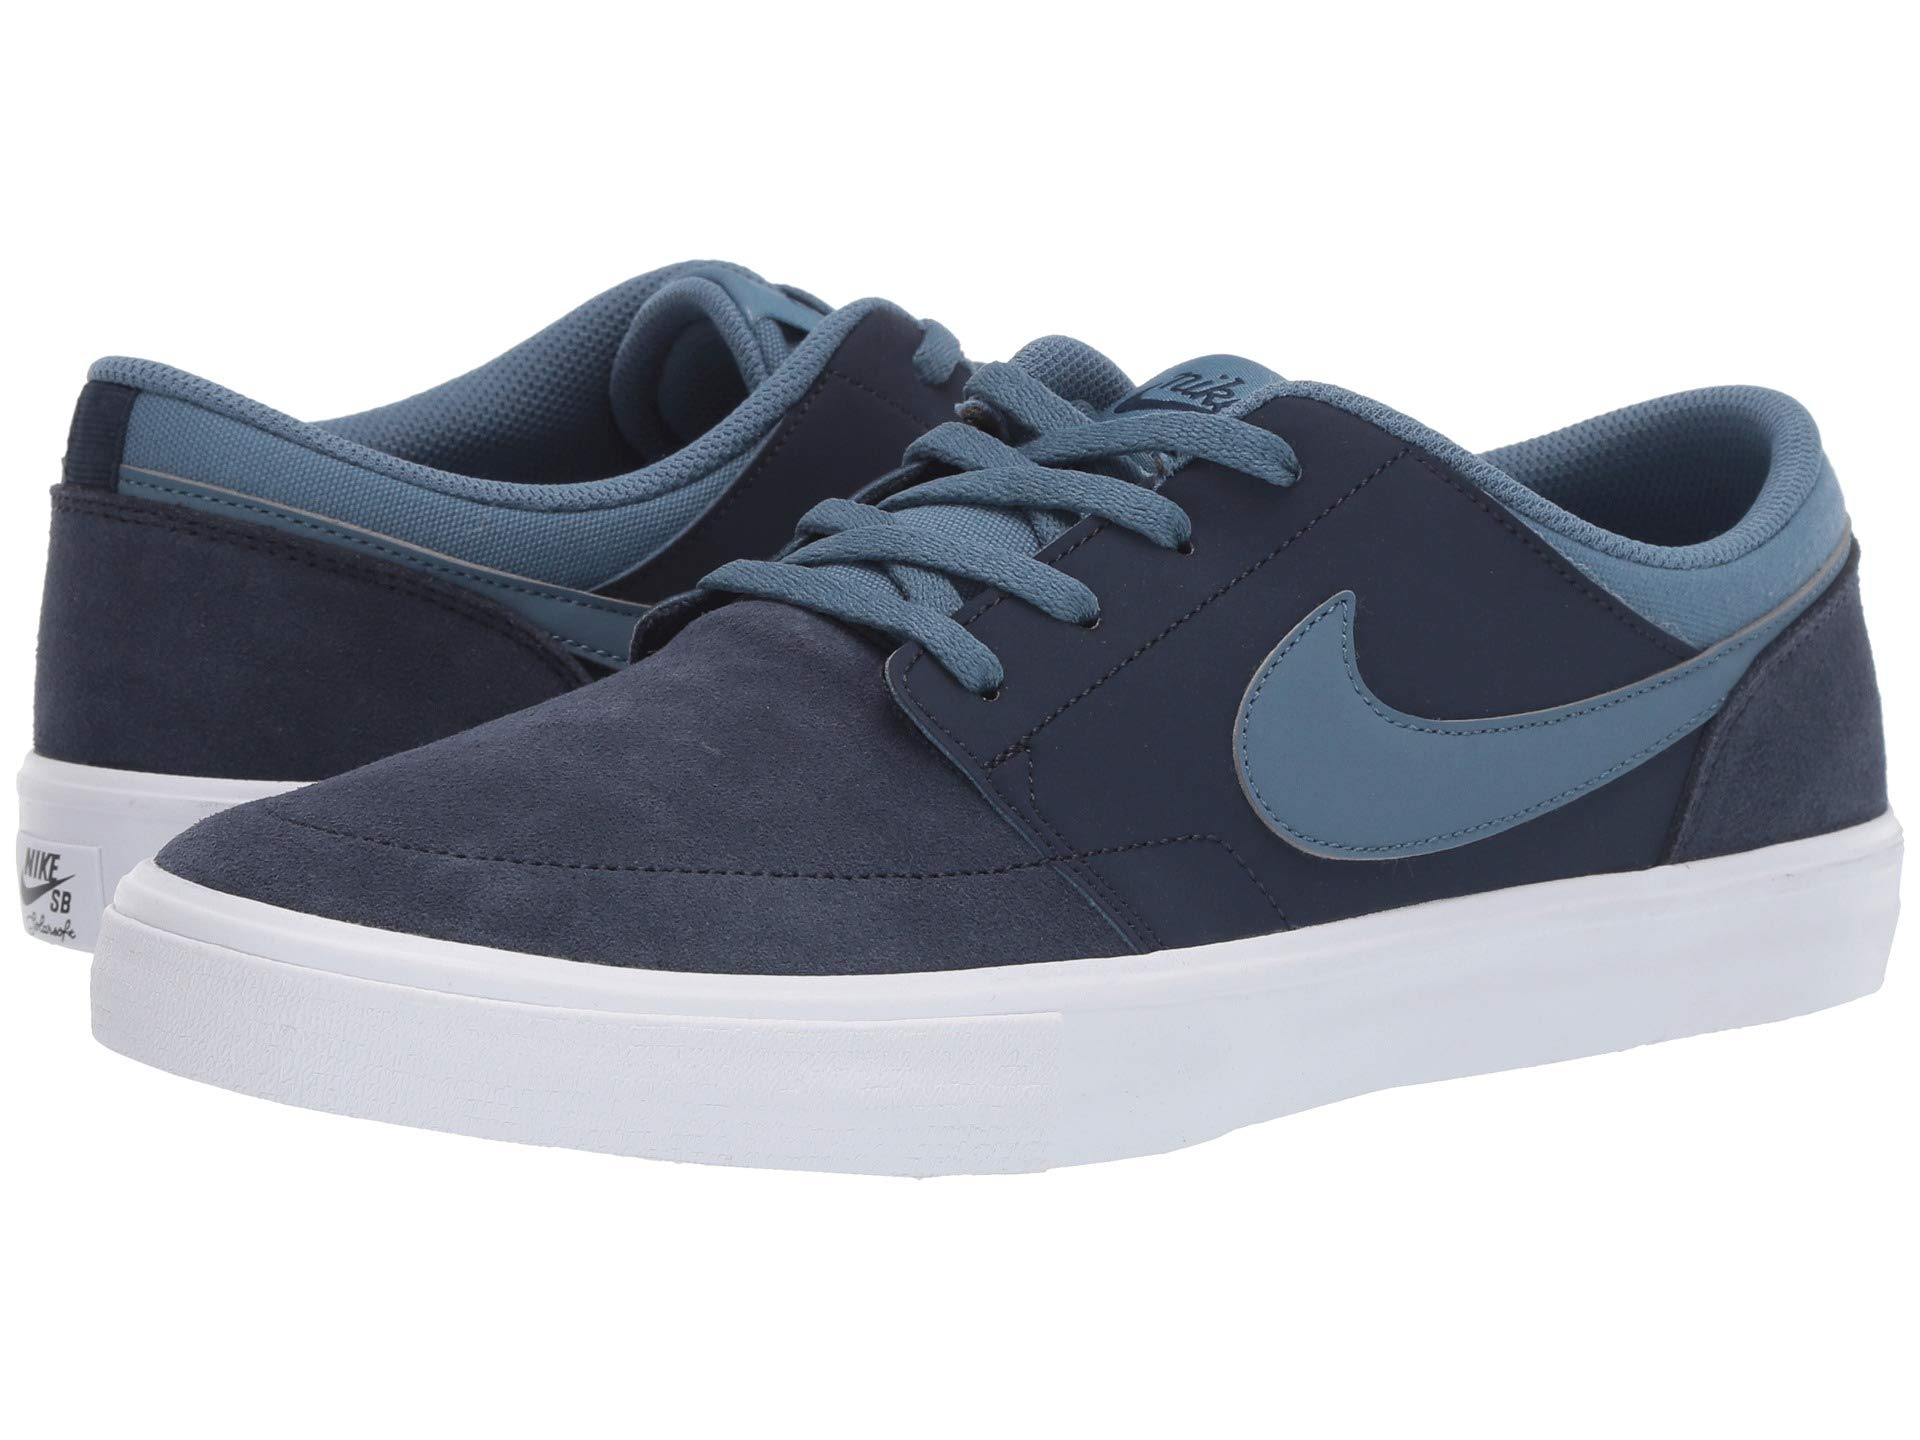 25c0519f amp; Shoes Suede thunderstorm Obsidian white – Sneakers Solar Athletic white  Nike Portmore Sb Ii qx6wOSP